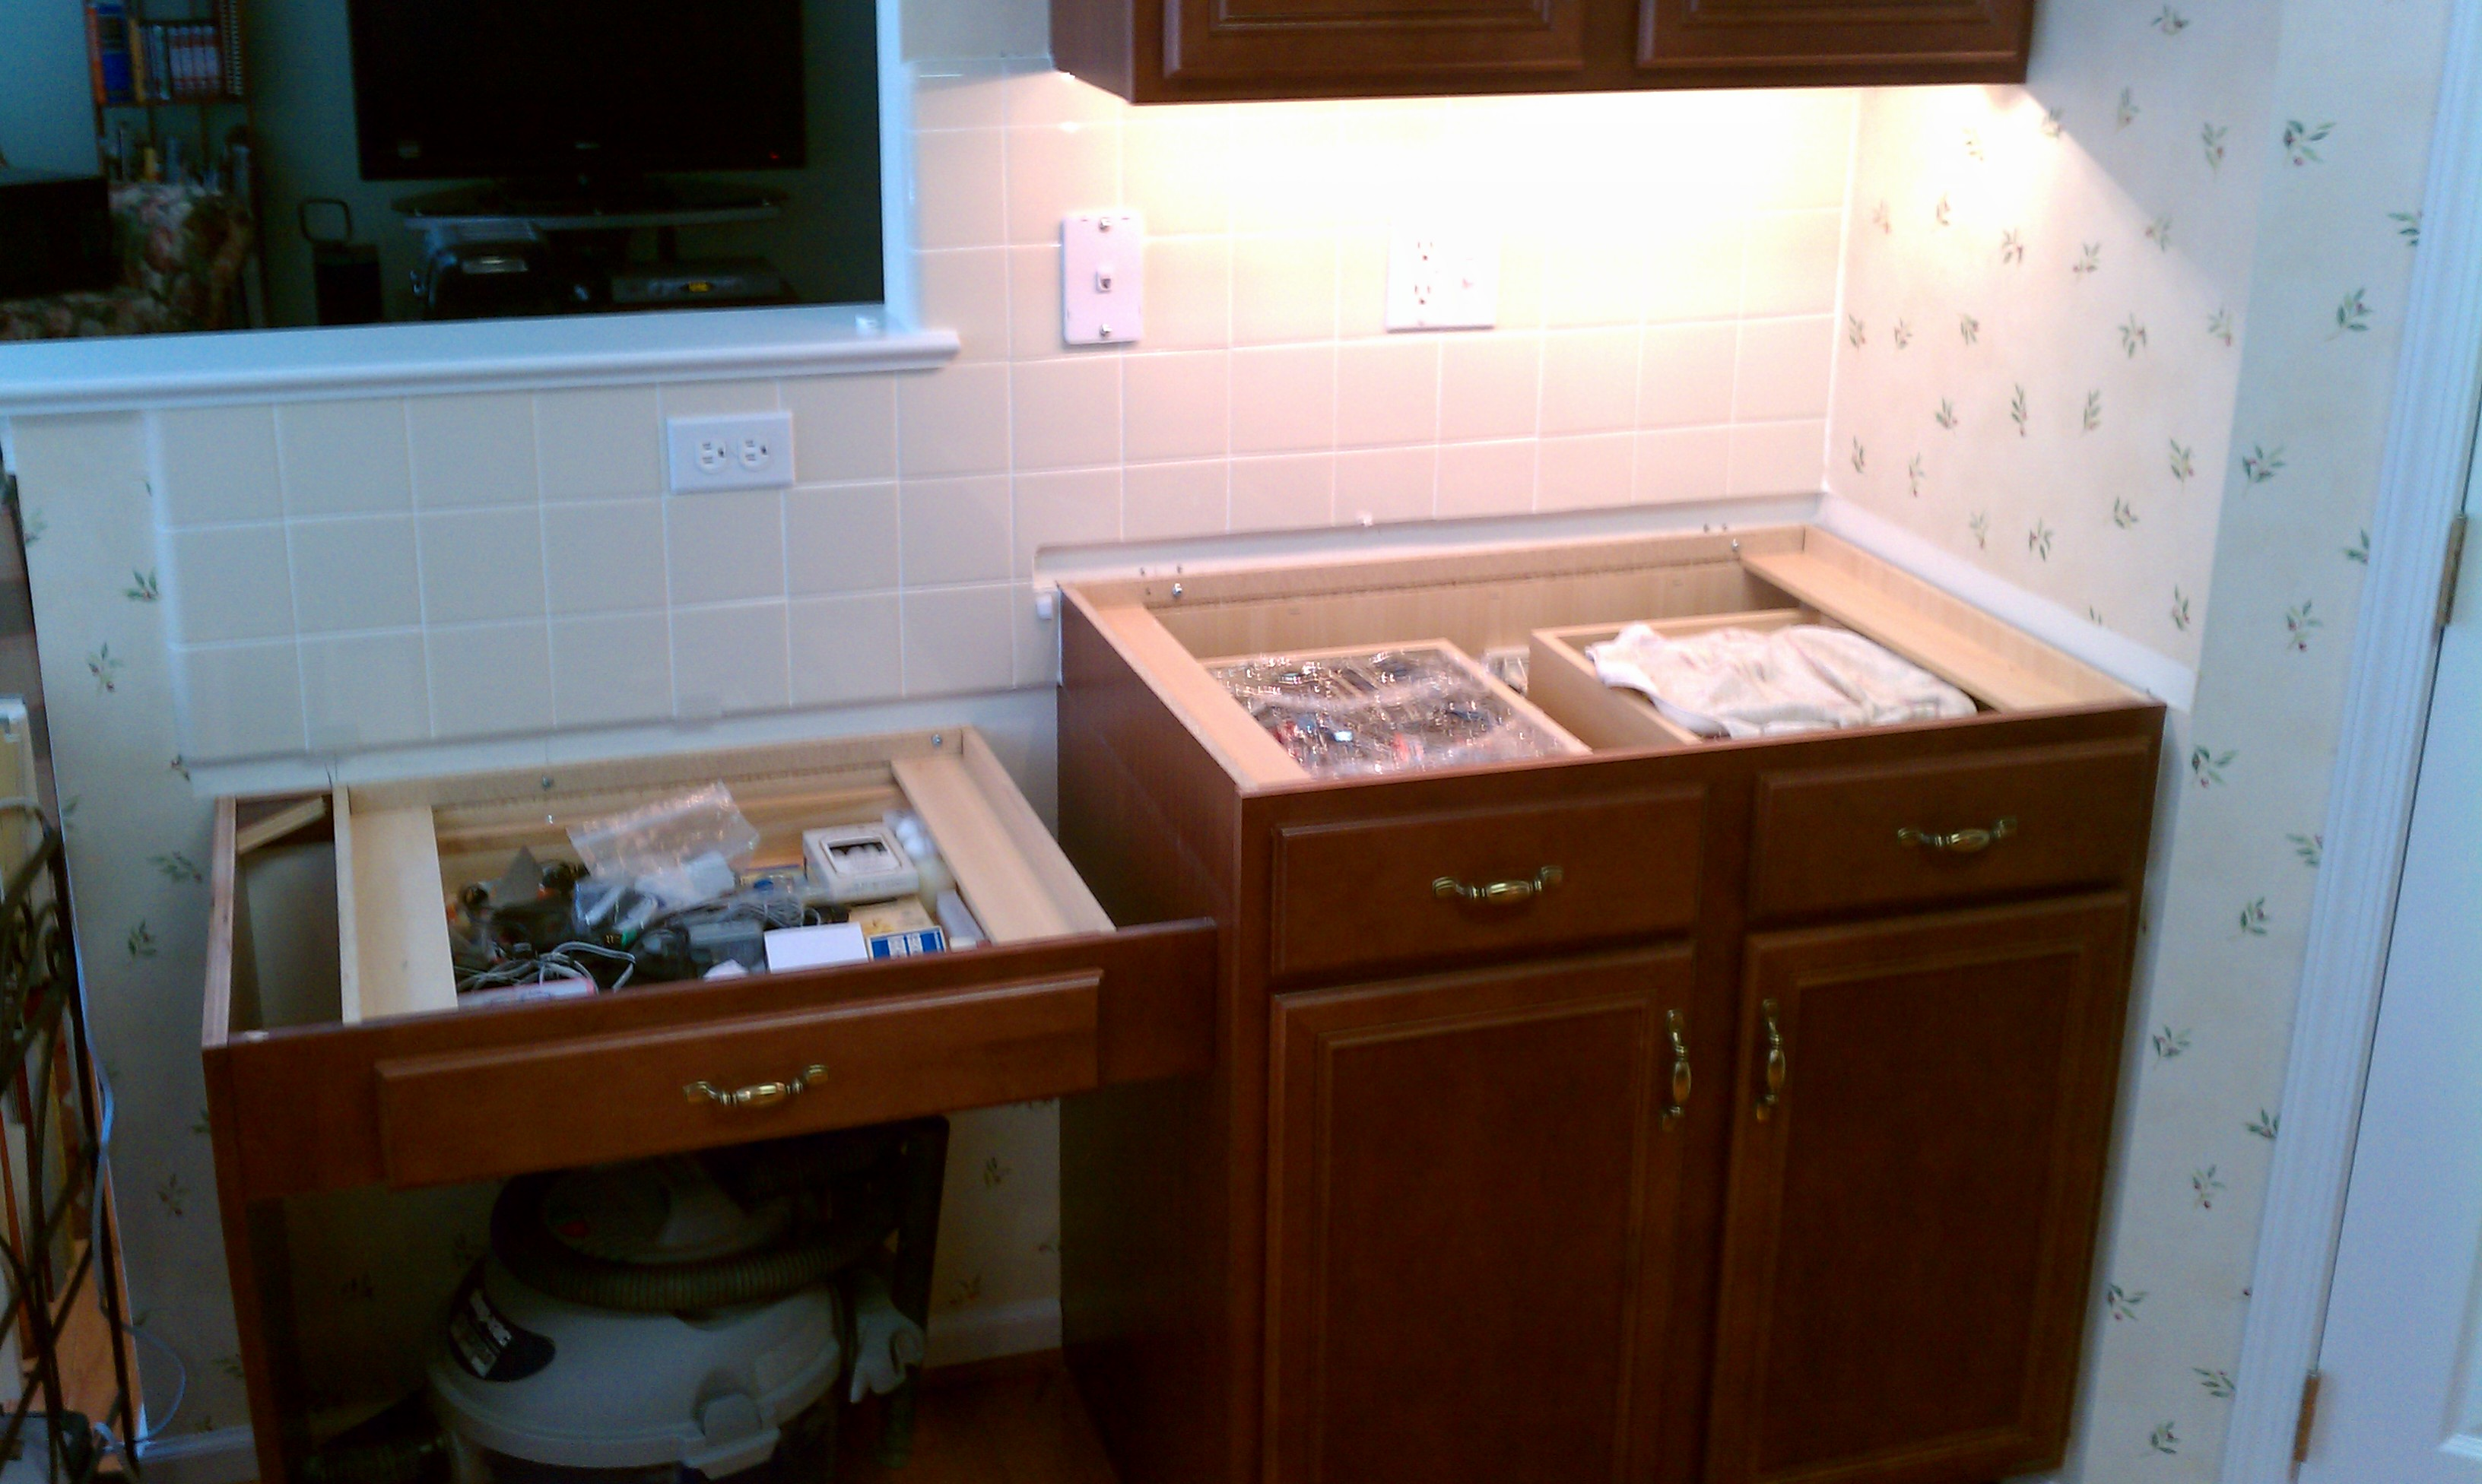 Granite Countertops West Chester Pa Granite Countertops And Under Cabinet Lighting West